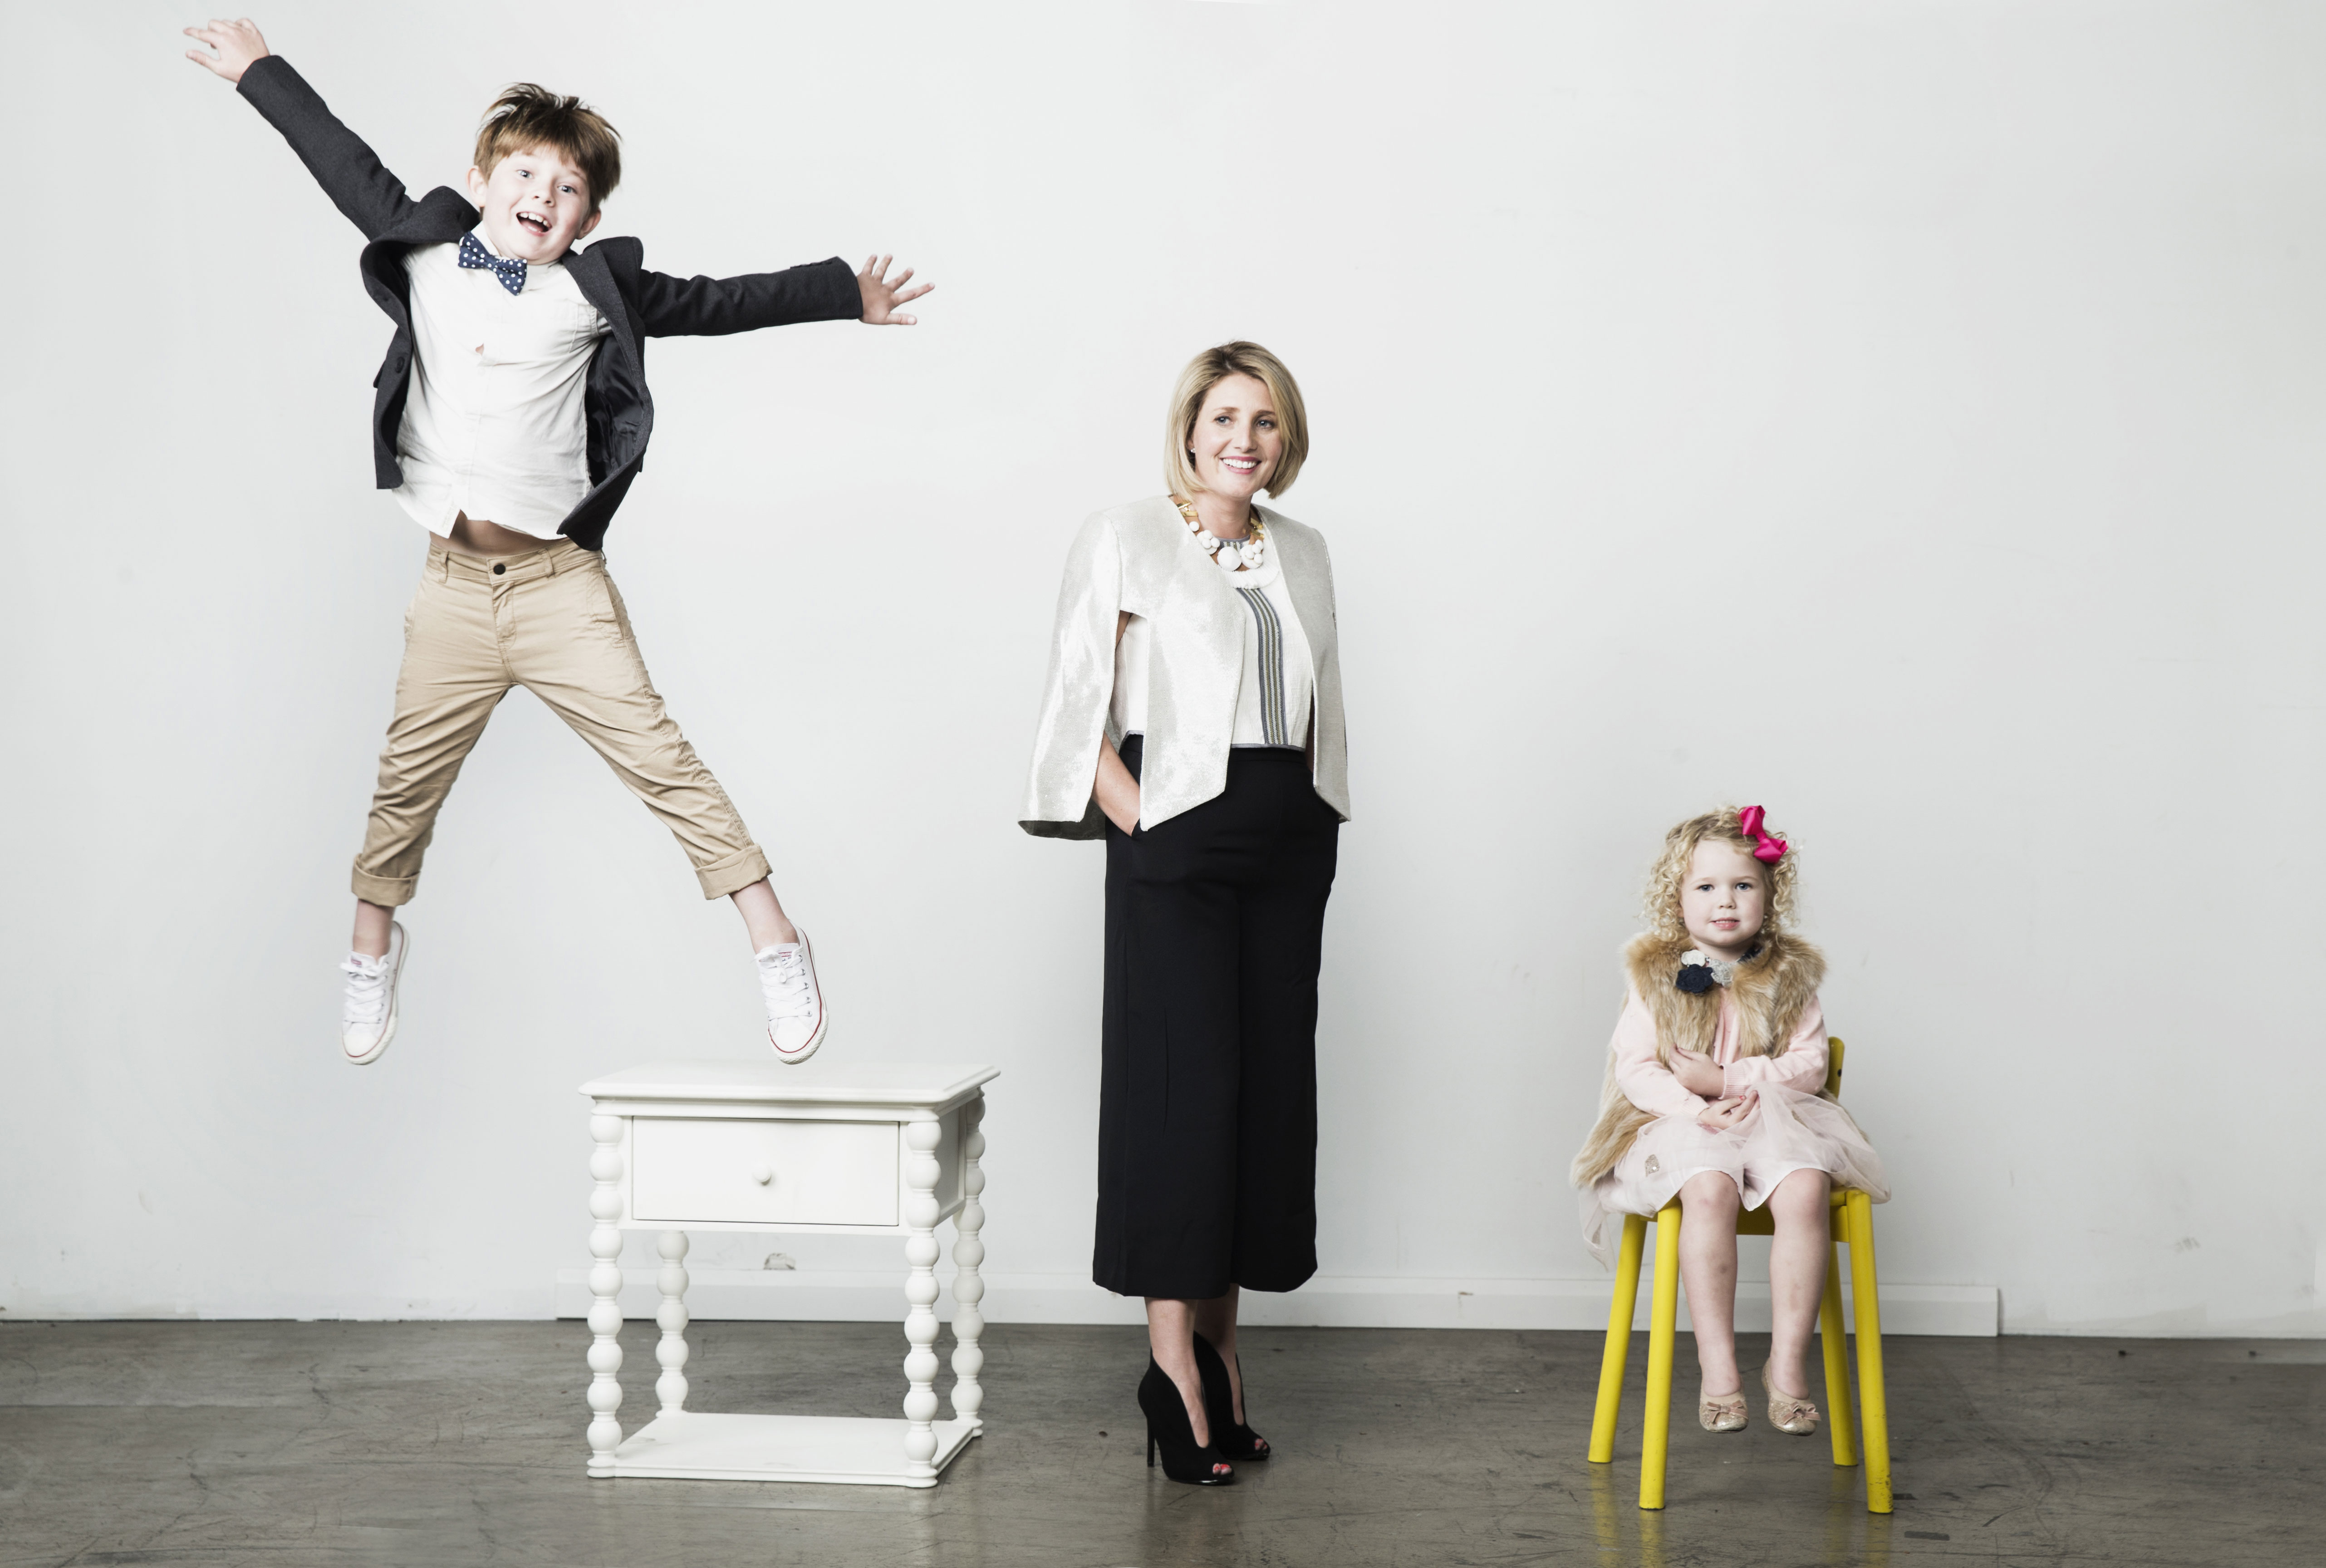 #GIRLBOSS: Kristy Withers from Incy Interiors on children's interiors and her top business tips